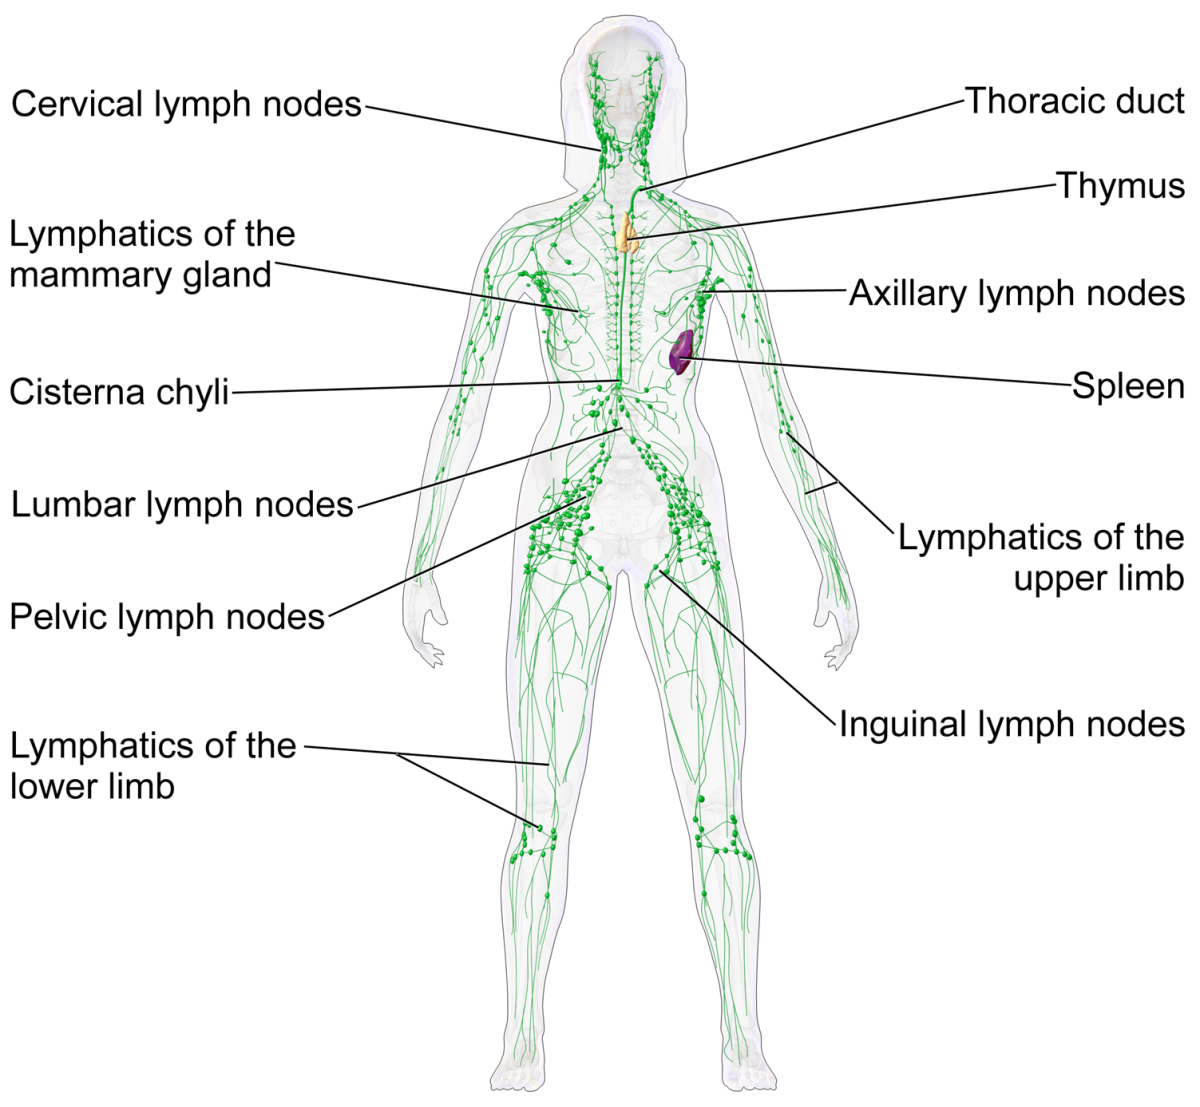 Lymphatic system of a female